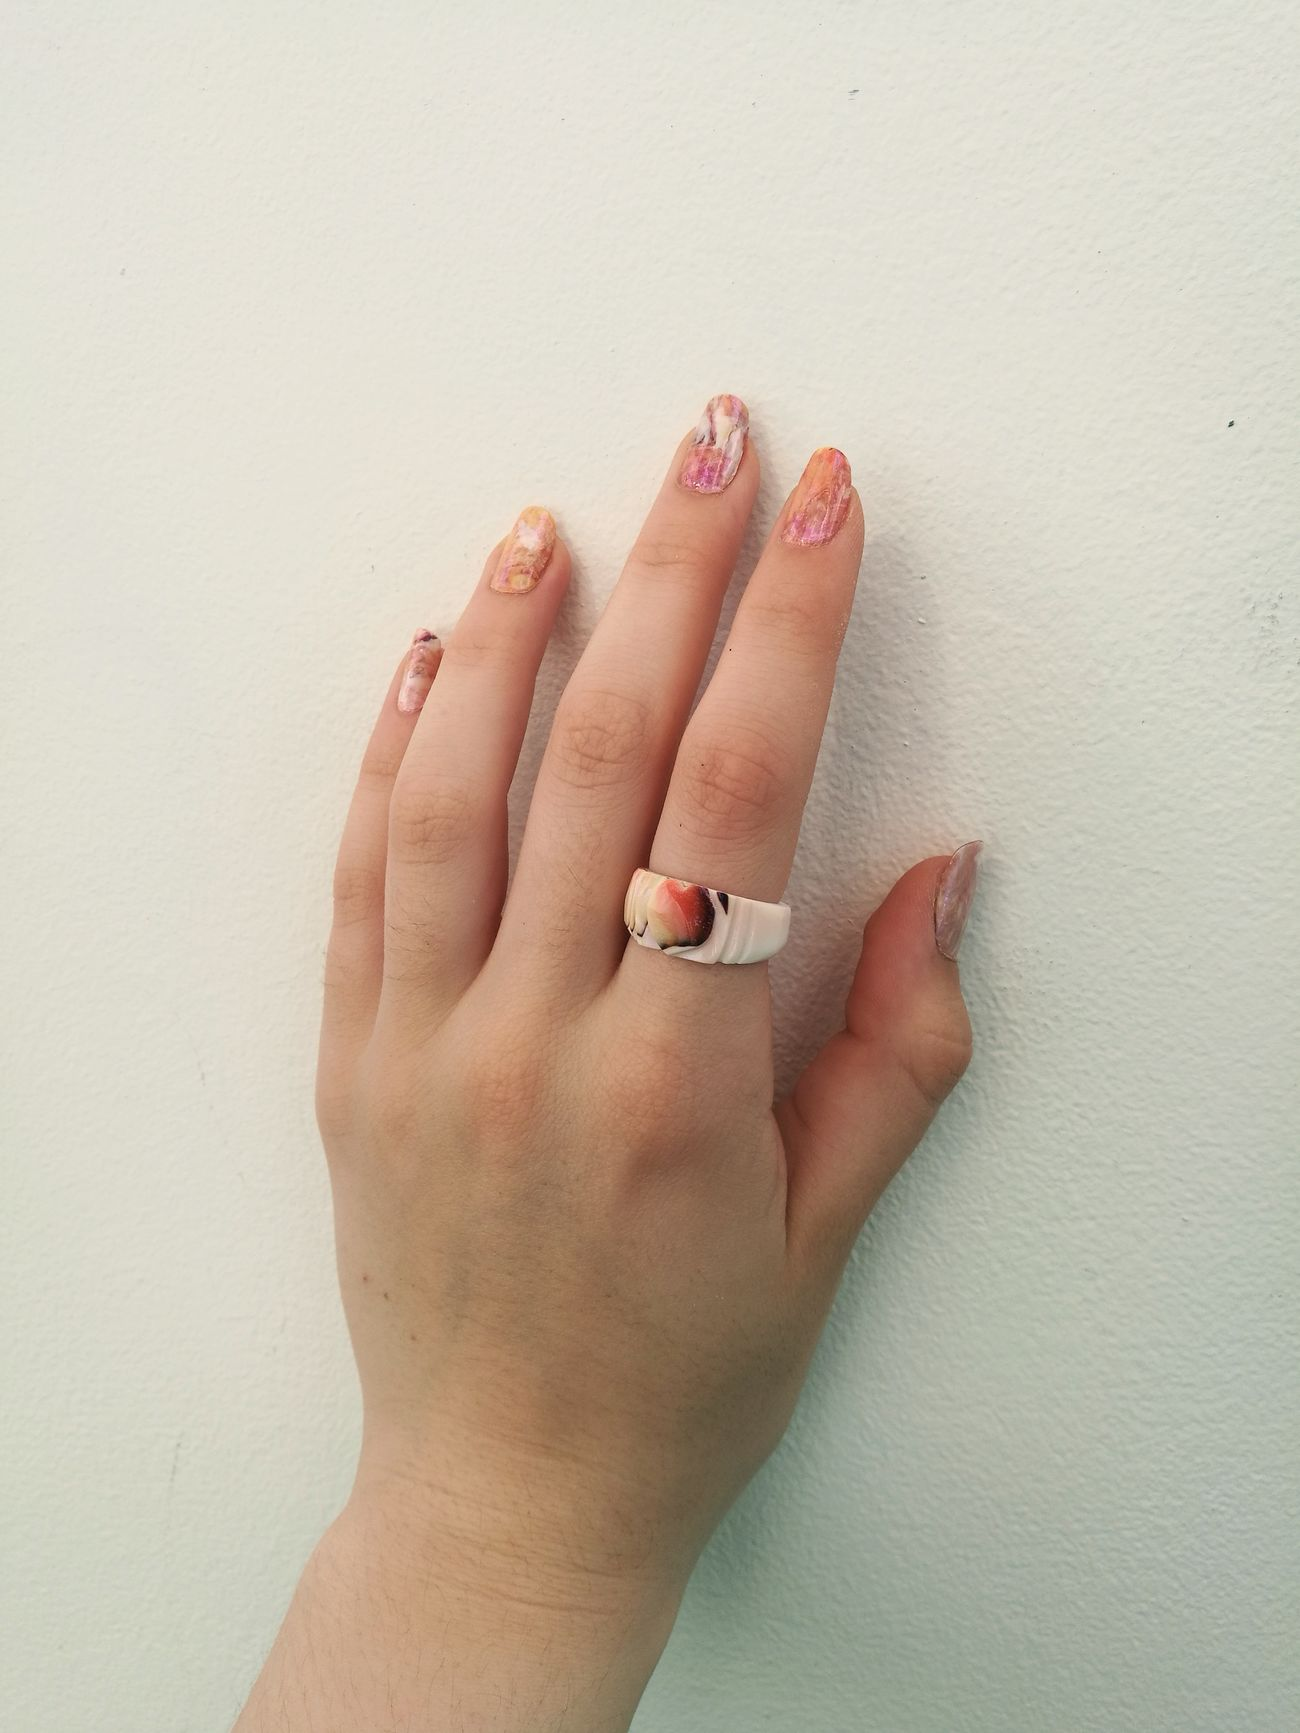 Human Finger Human Hand Nail Polish Manicure Nails Rings♥ Shell Ring Orange Color White Color Hand